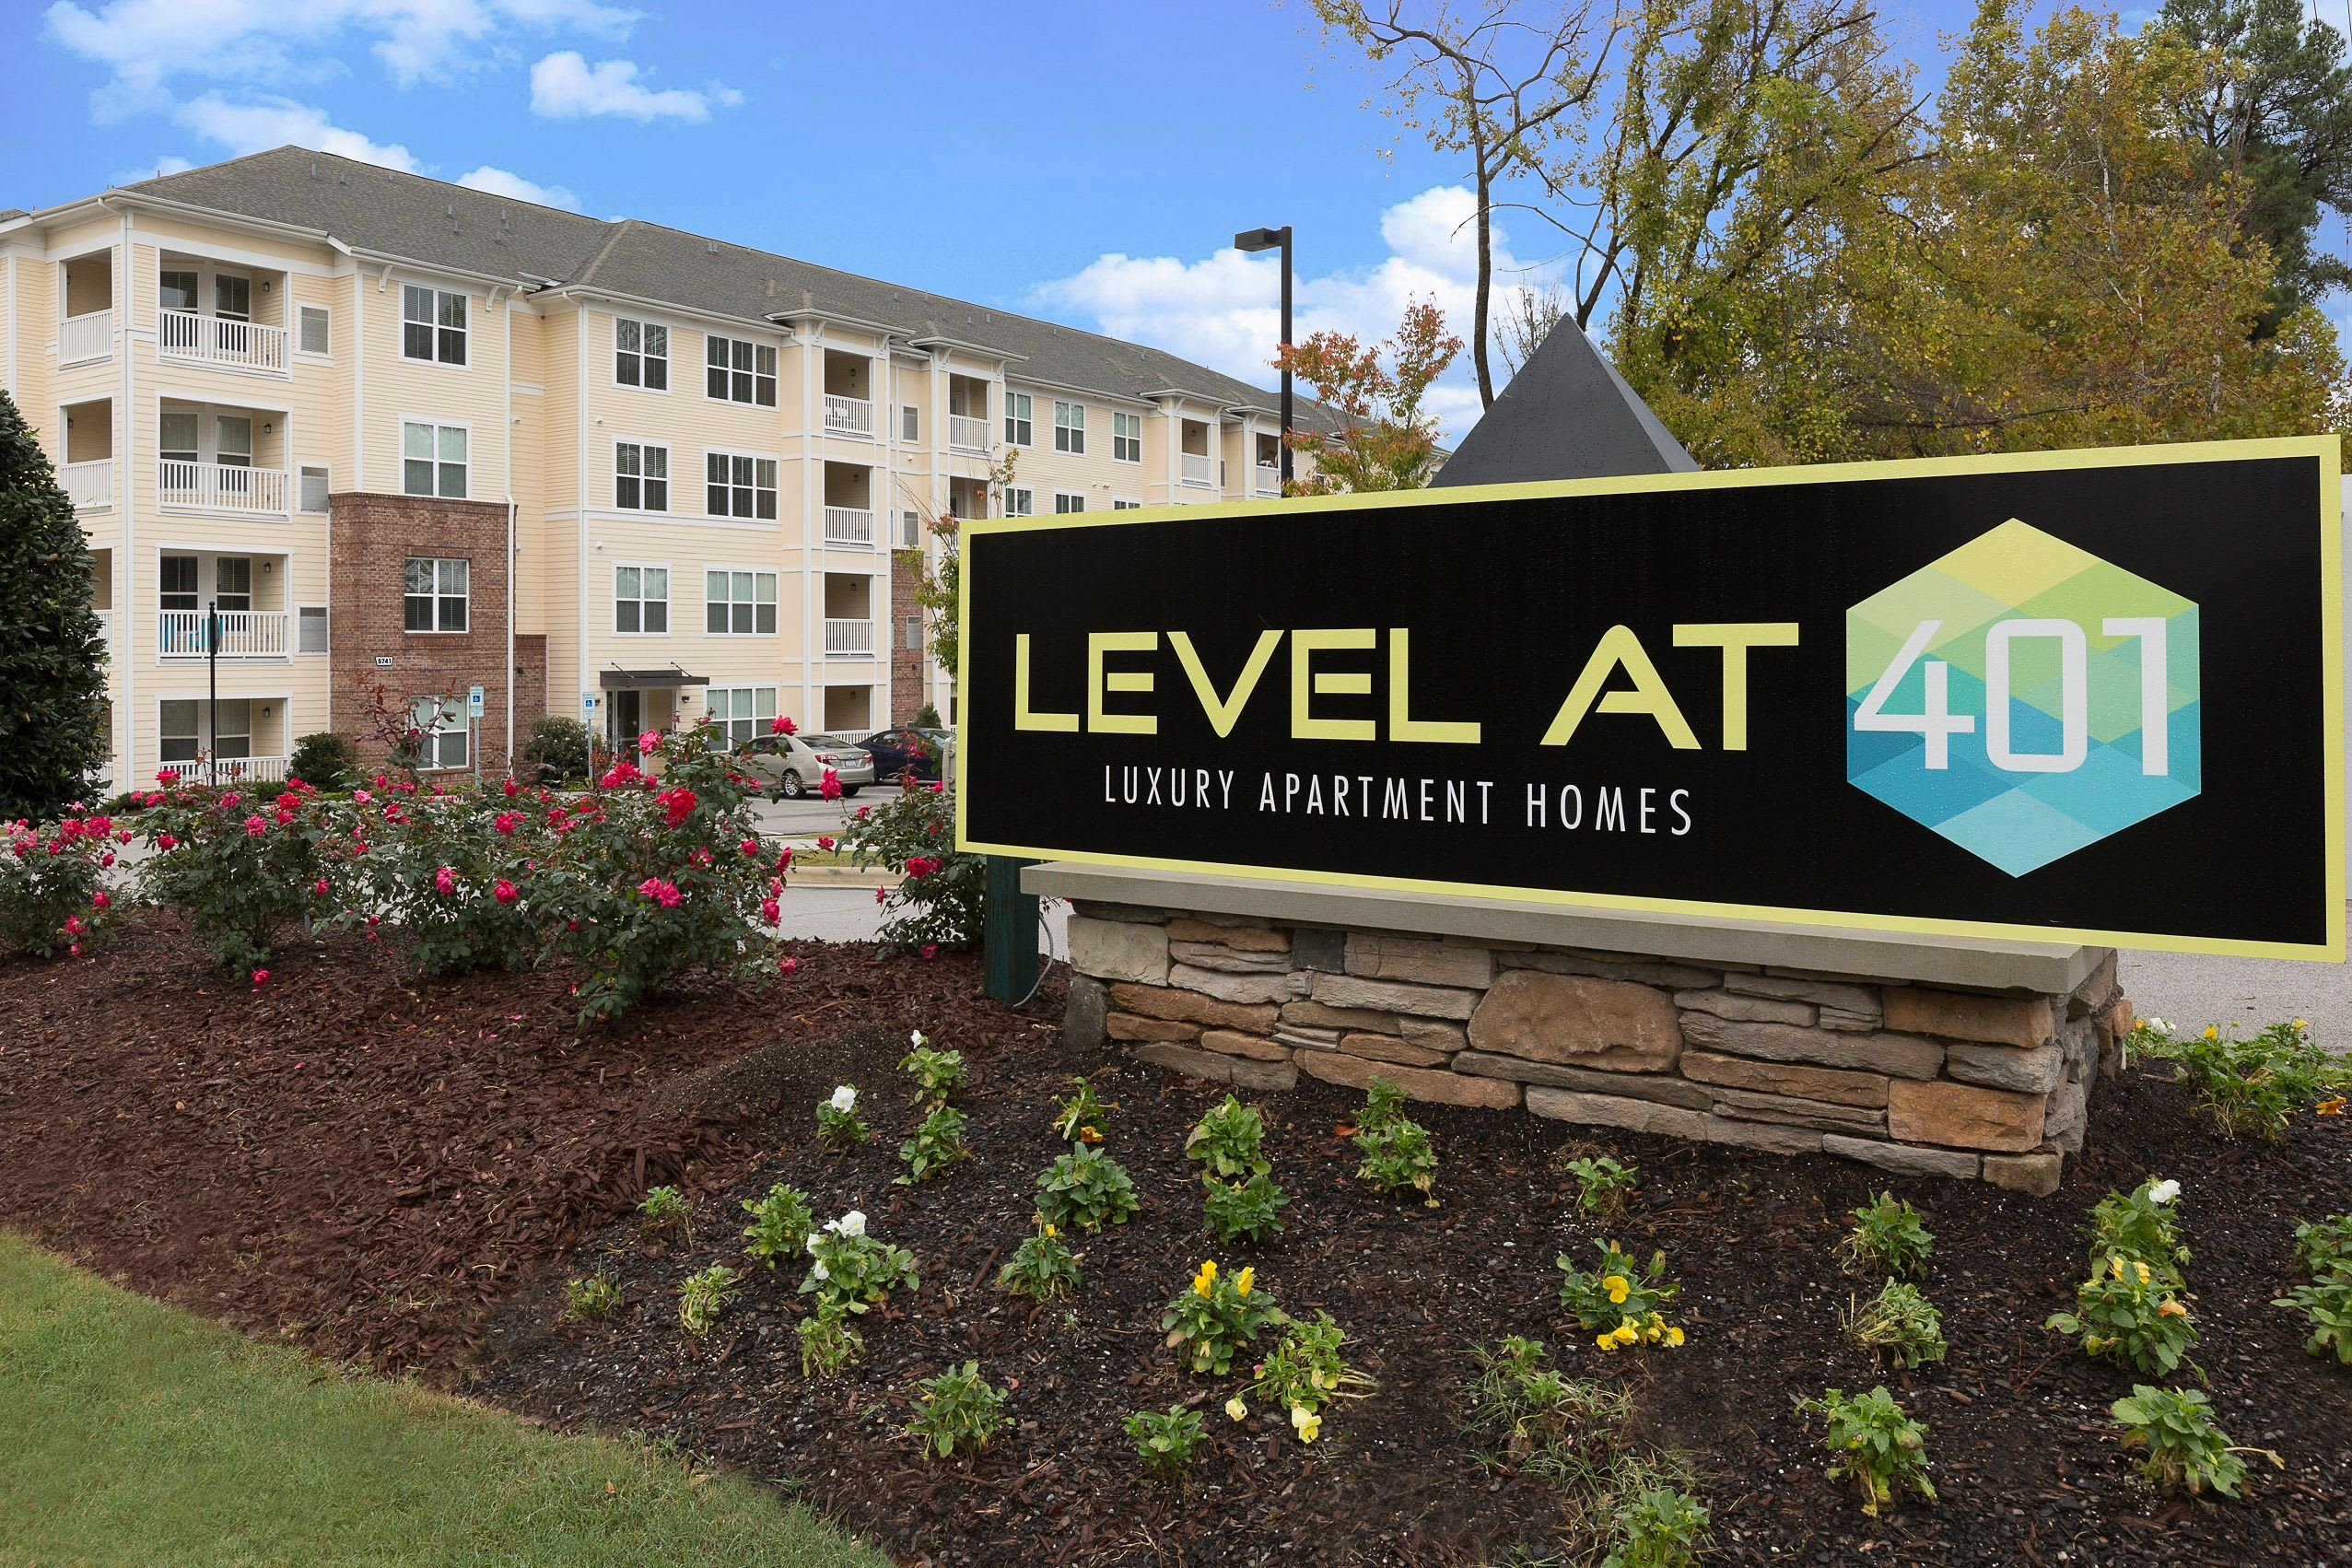 Level at 401 sign, outside of building